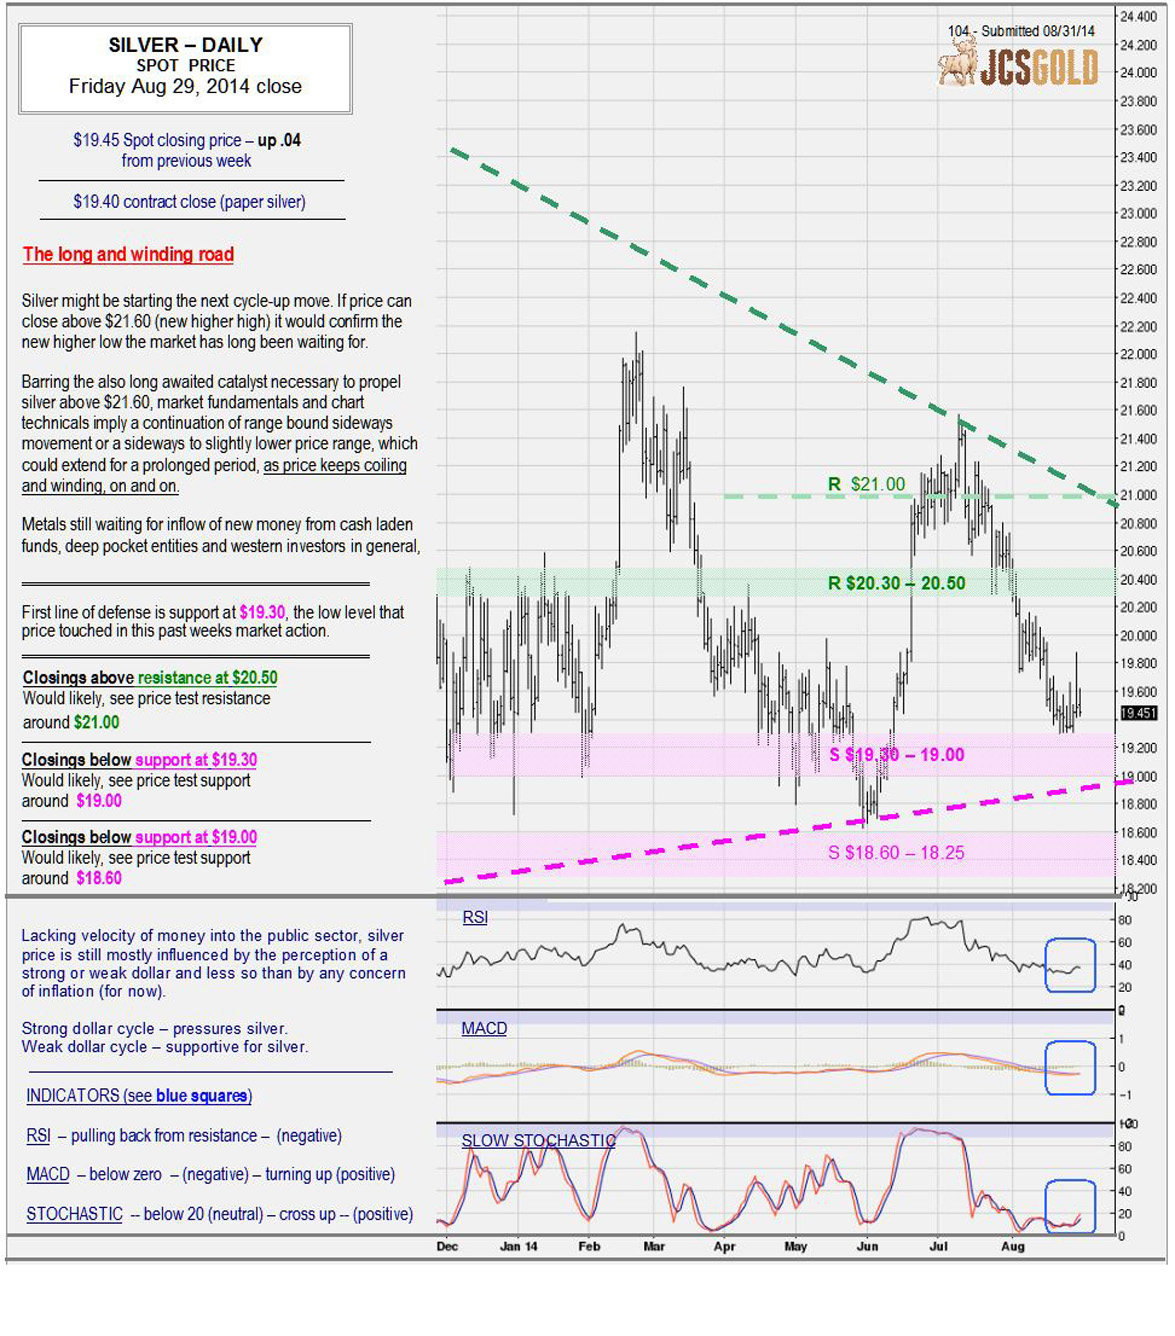 Aug 29, 2014 chart & commentary